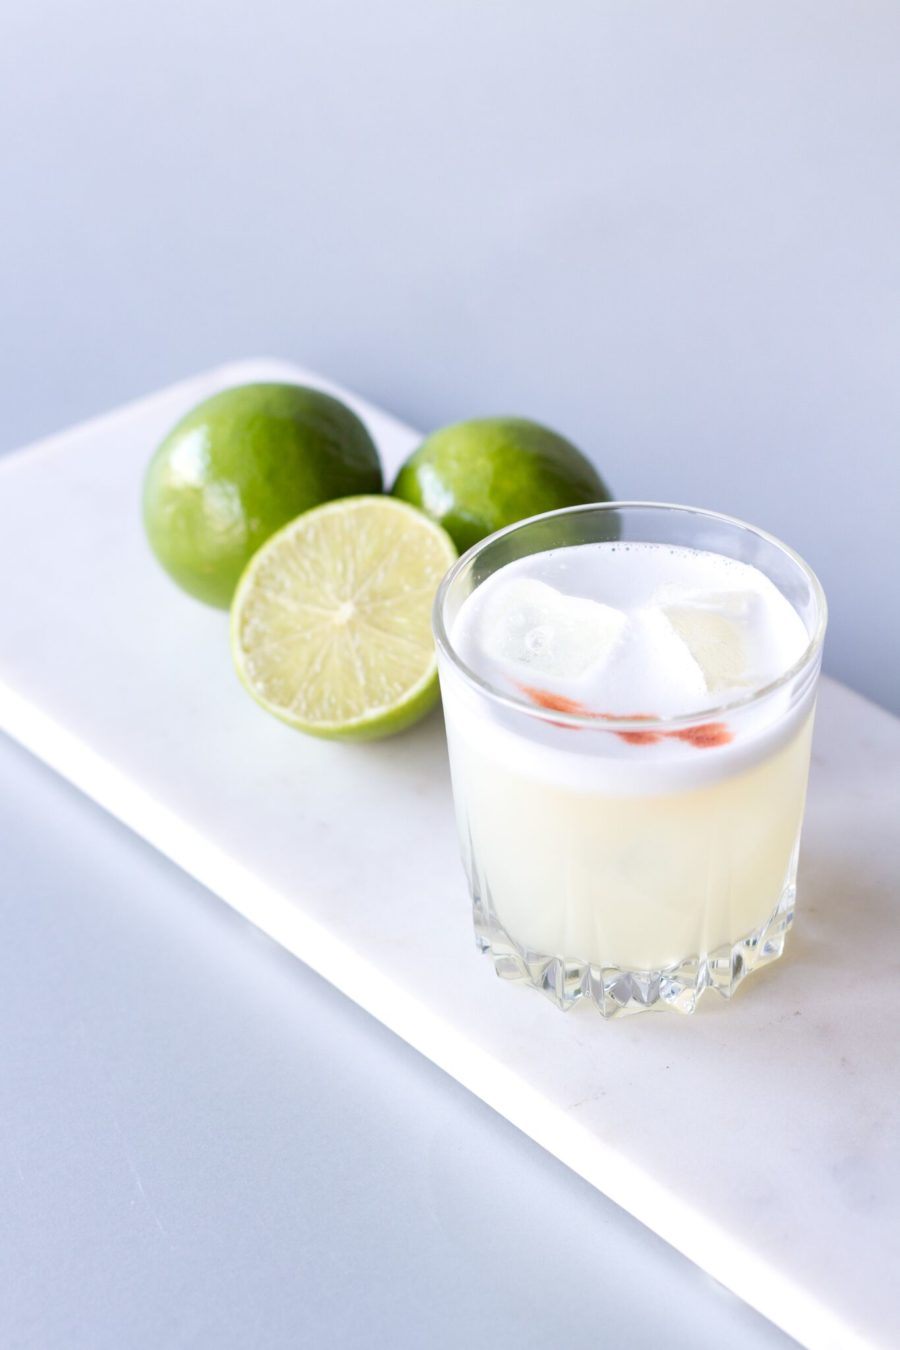 PISCO SOUR DAY